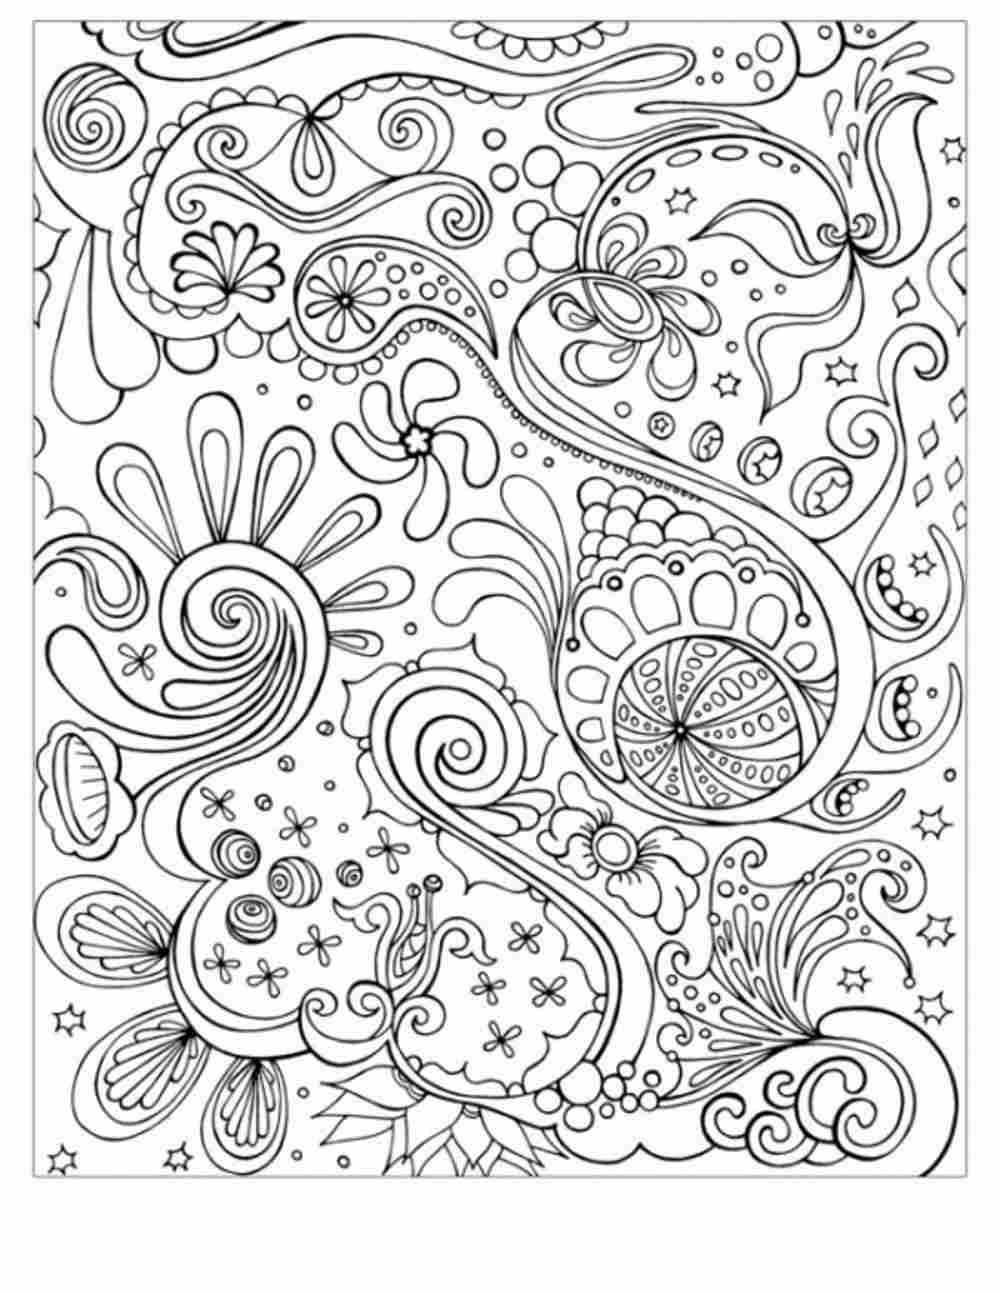 adult coloring pages download | Abstract Coloring Pages For Adults - Coloring Home